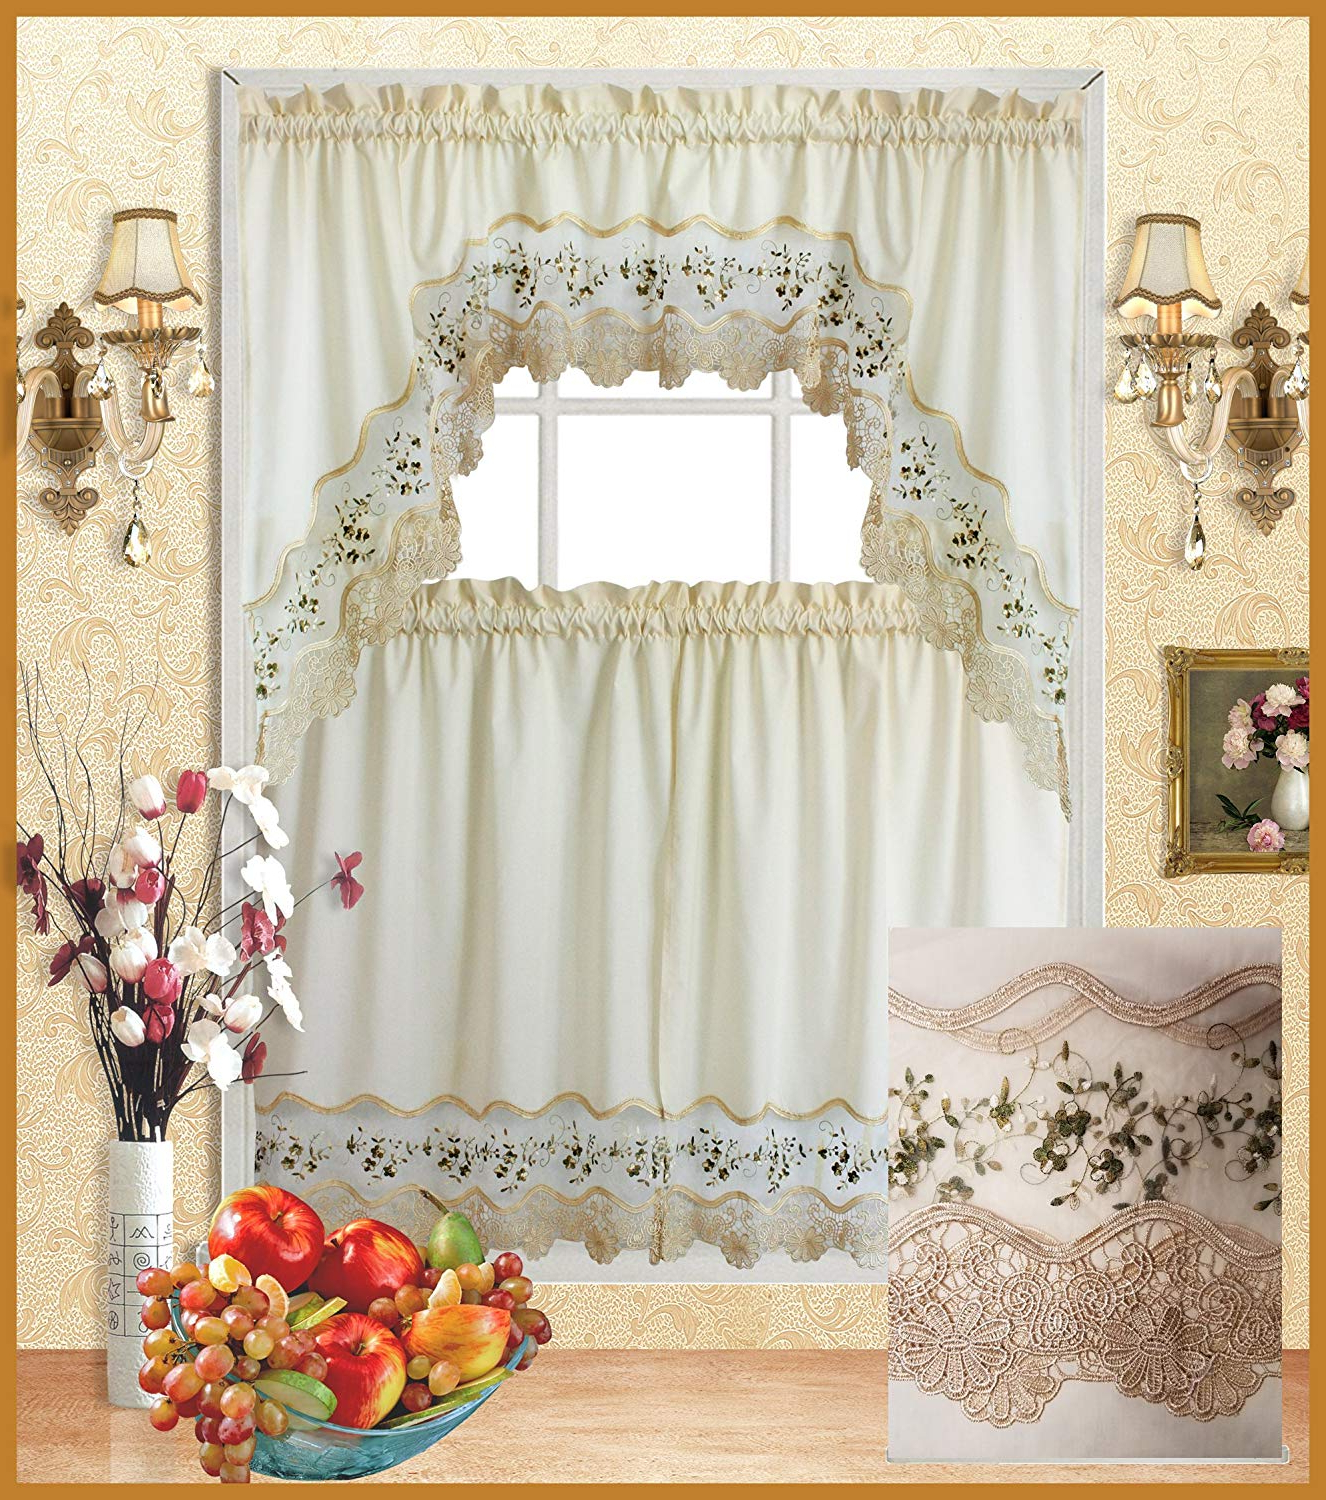 Fancy Collection 3pc Beige With Embroidery Floral Kitchen/cafe Curtain Tier And Valance Set 001092 (blue/beige) Within Popular Cotton Blend Ivy Floral Tier Curtain And Swag Sets (View 12 of 20)